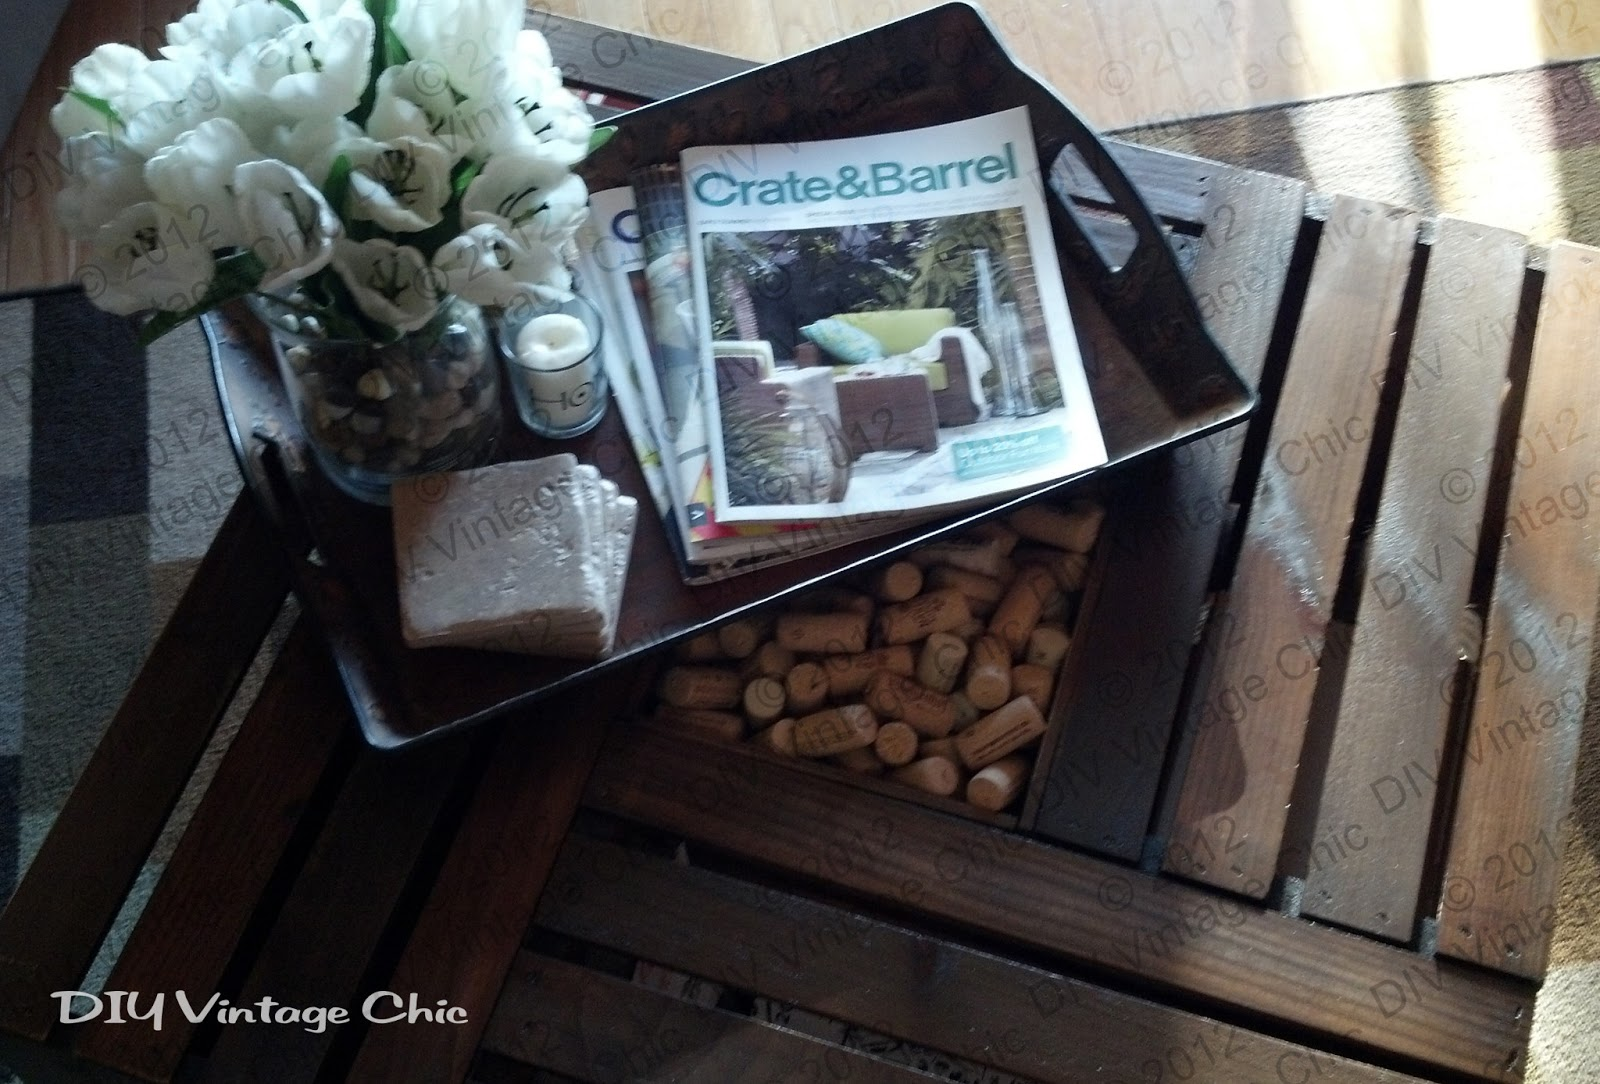 Diy vintage chic vintage wine crate coffee table a few of my favorite inspirational magazines also included are my coasters also known as cheap tiles from lowes theyll geotapseo Images